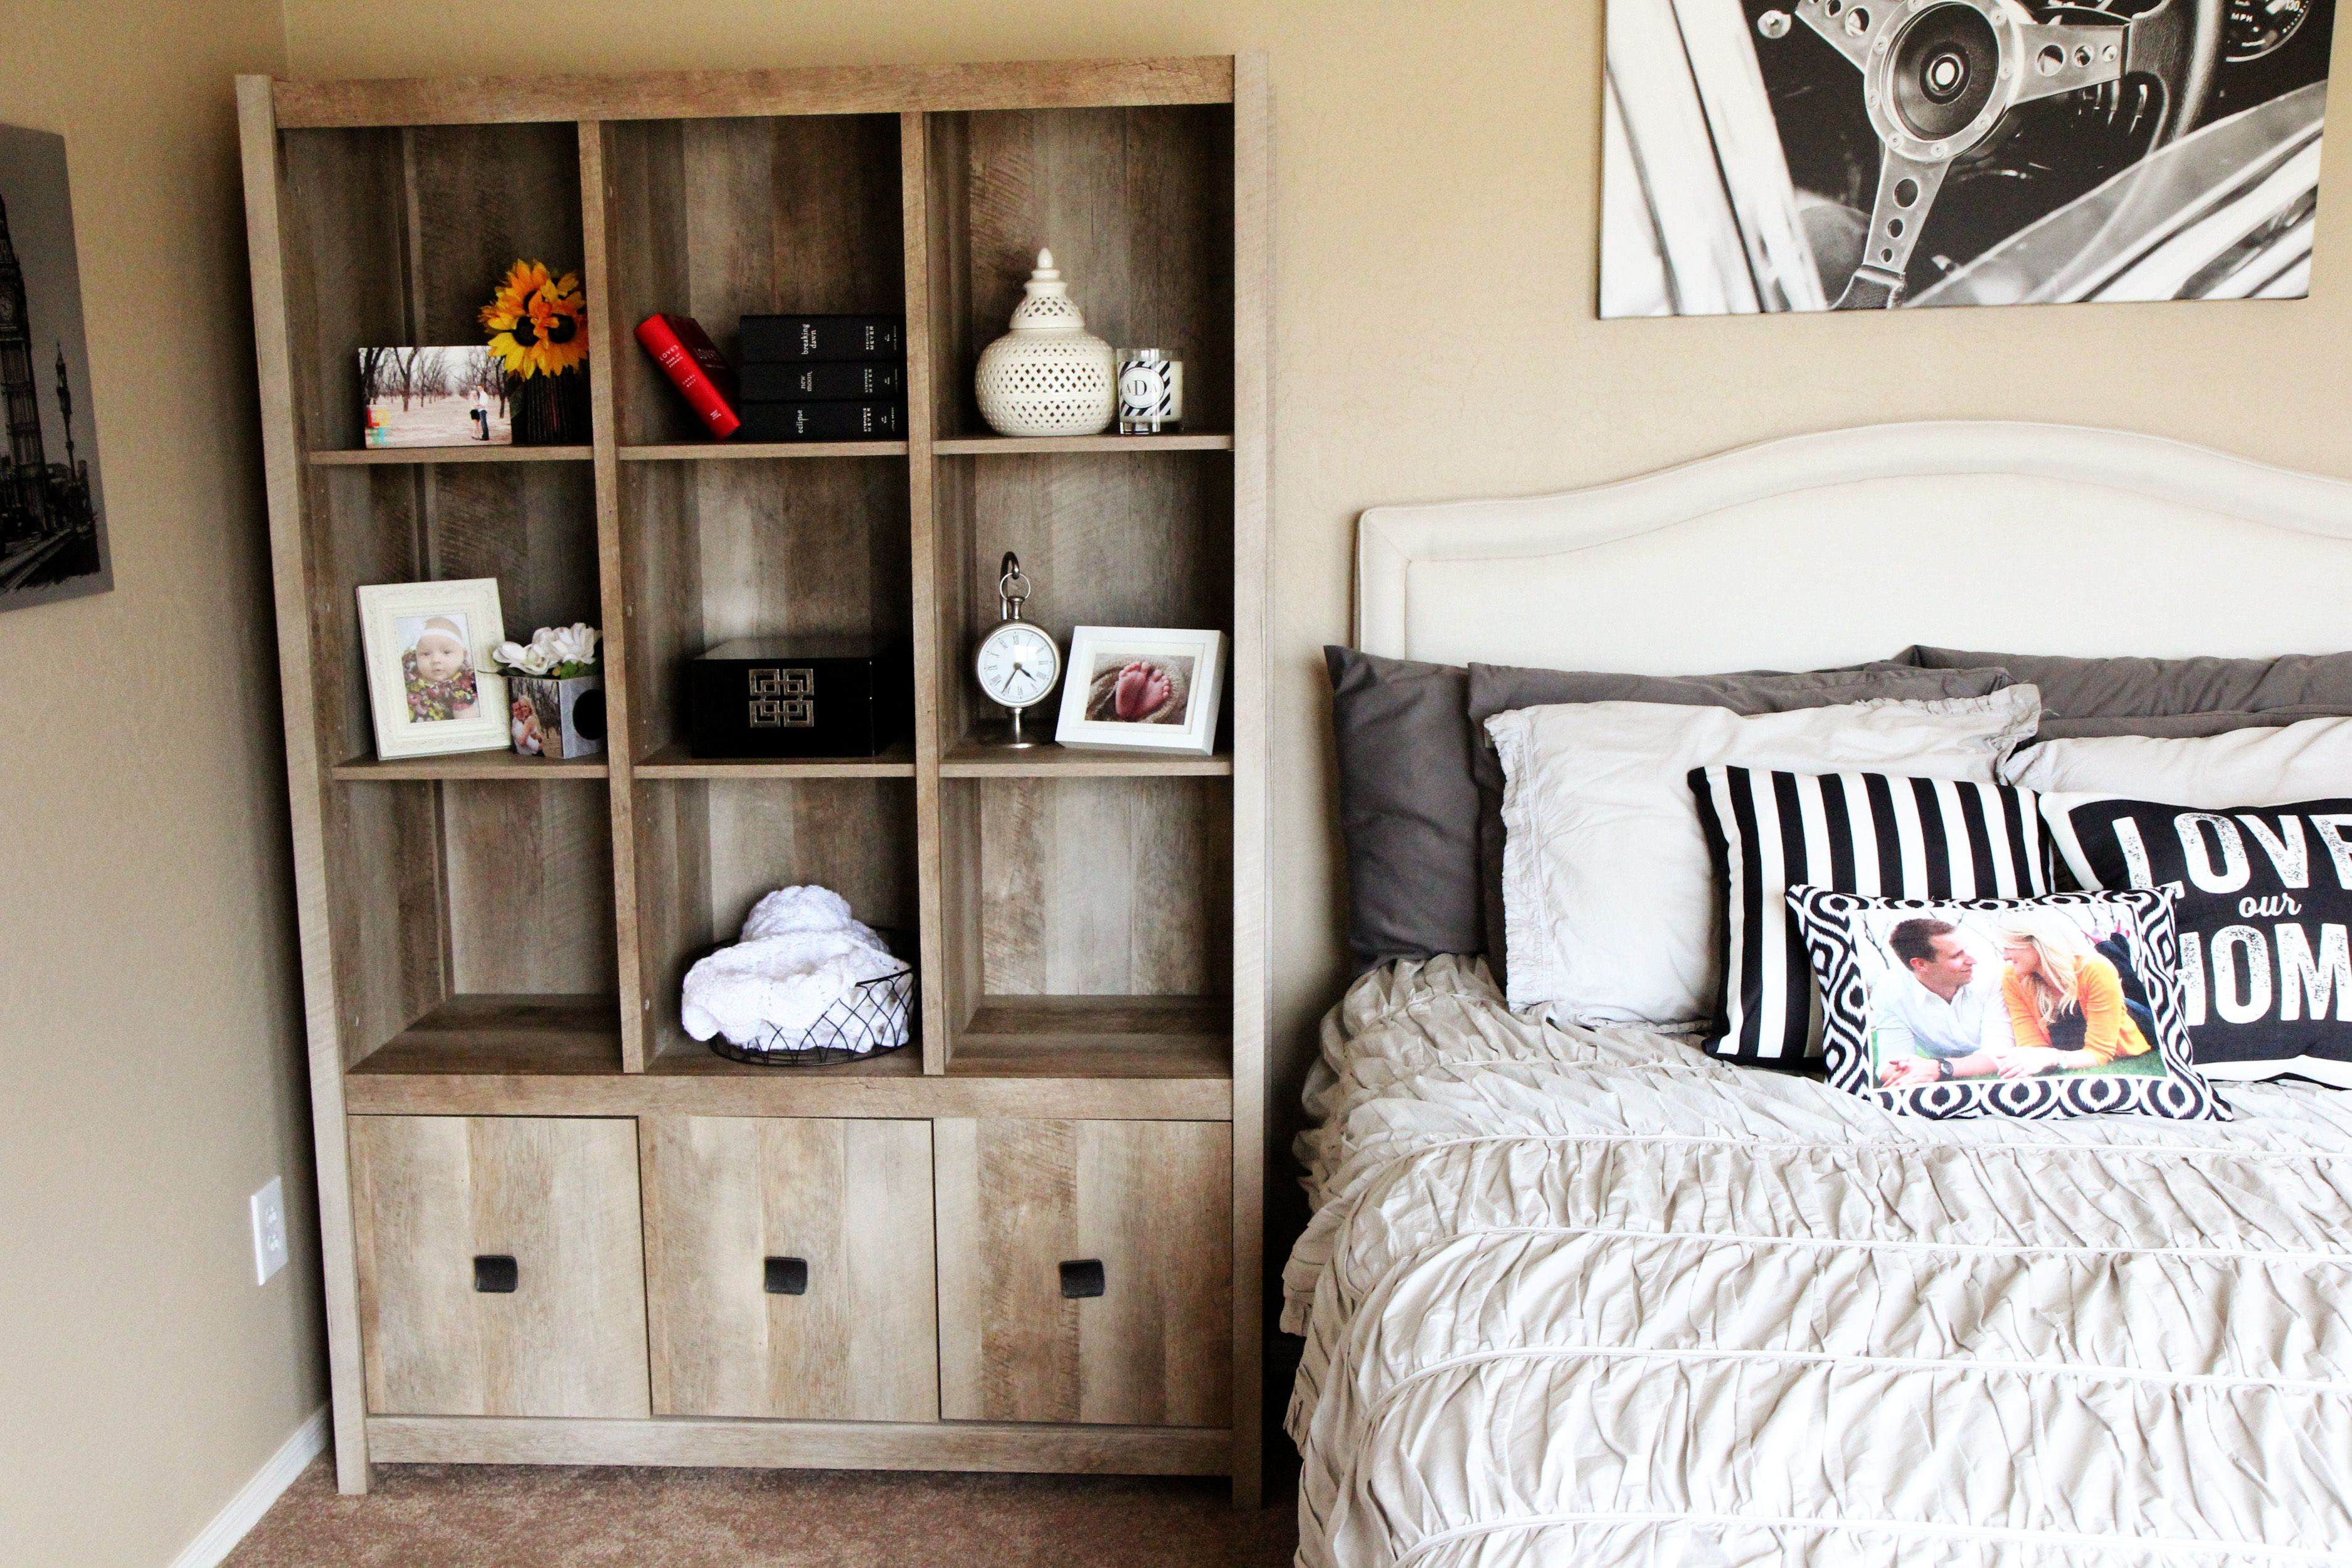 All Your Guests Necessities From Home At Their Finger Tips Sauder Furniture Furniture Sauder Woodworking